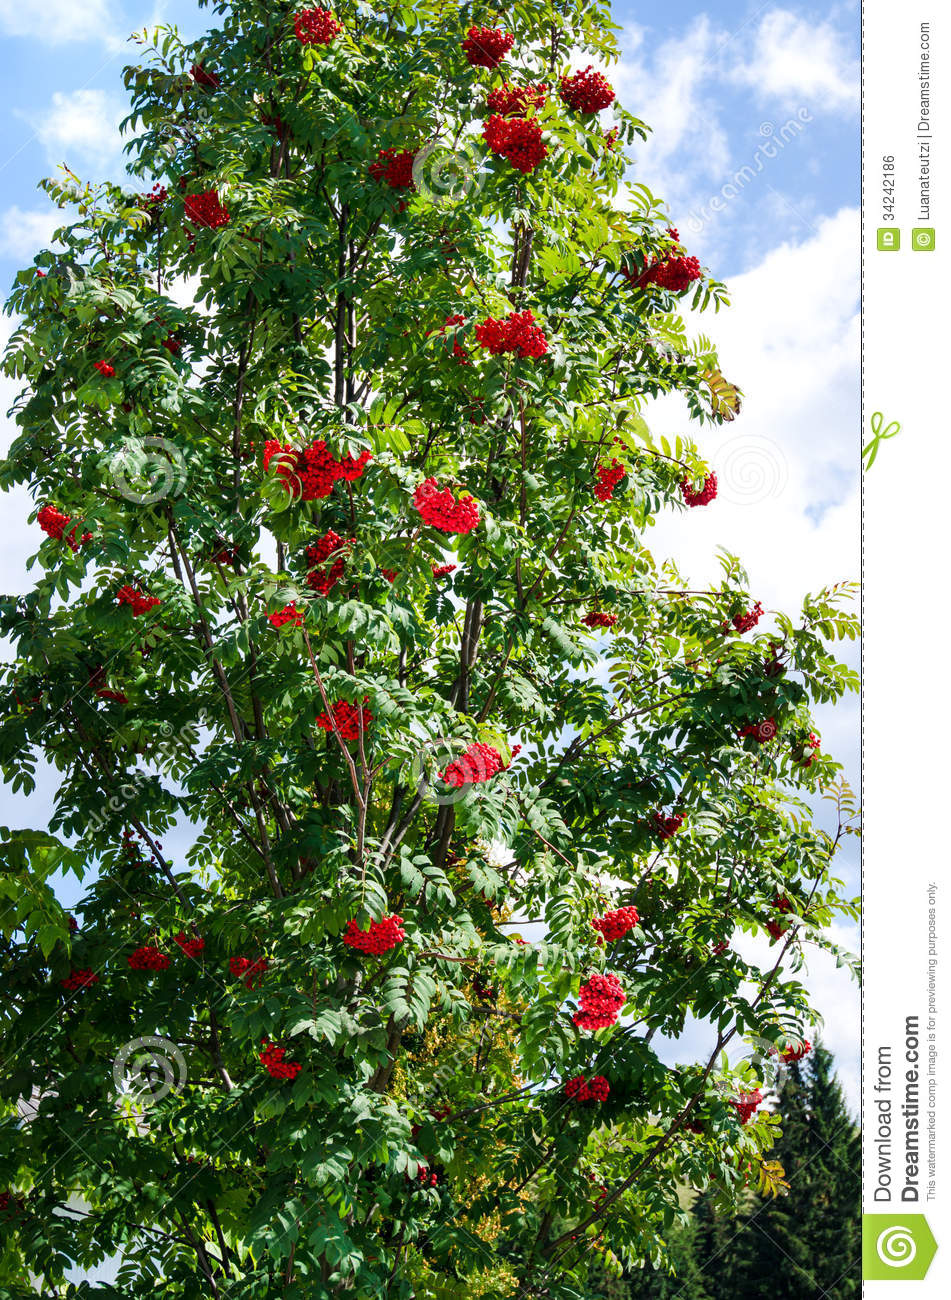 Beautiful fruit pictures - Beautiful Green Tree Full Of Red Wild Berrie Fruits